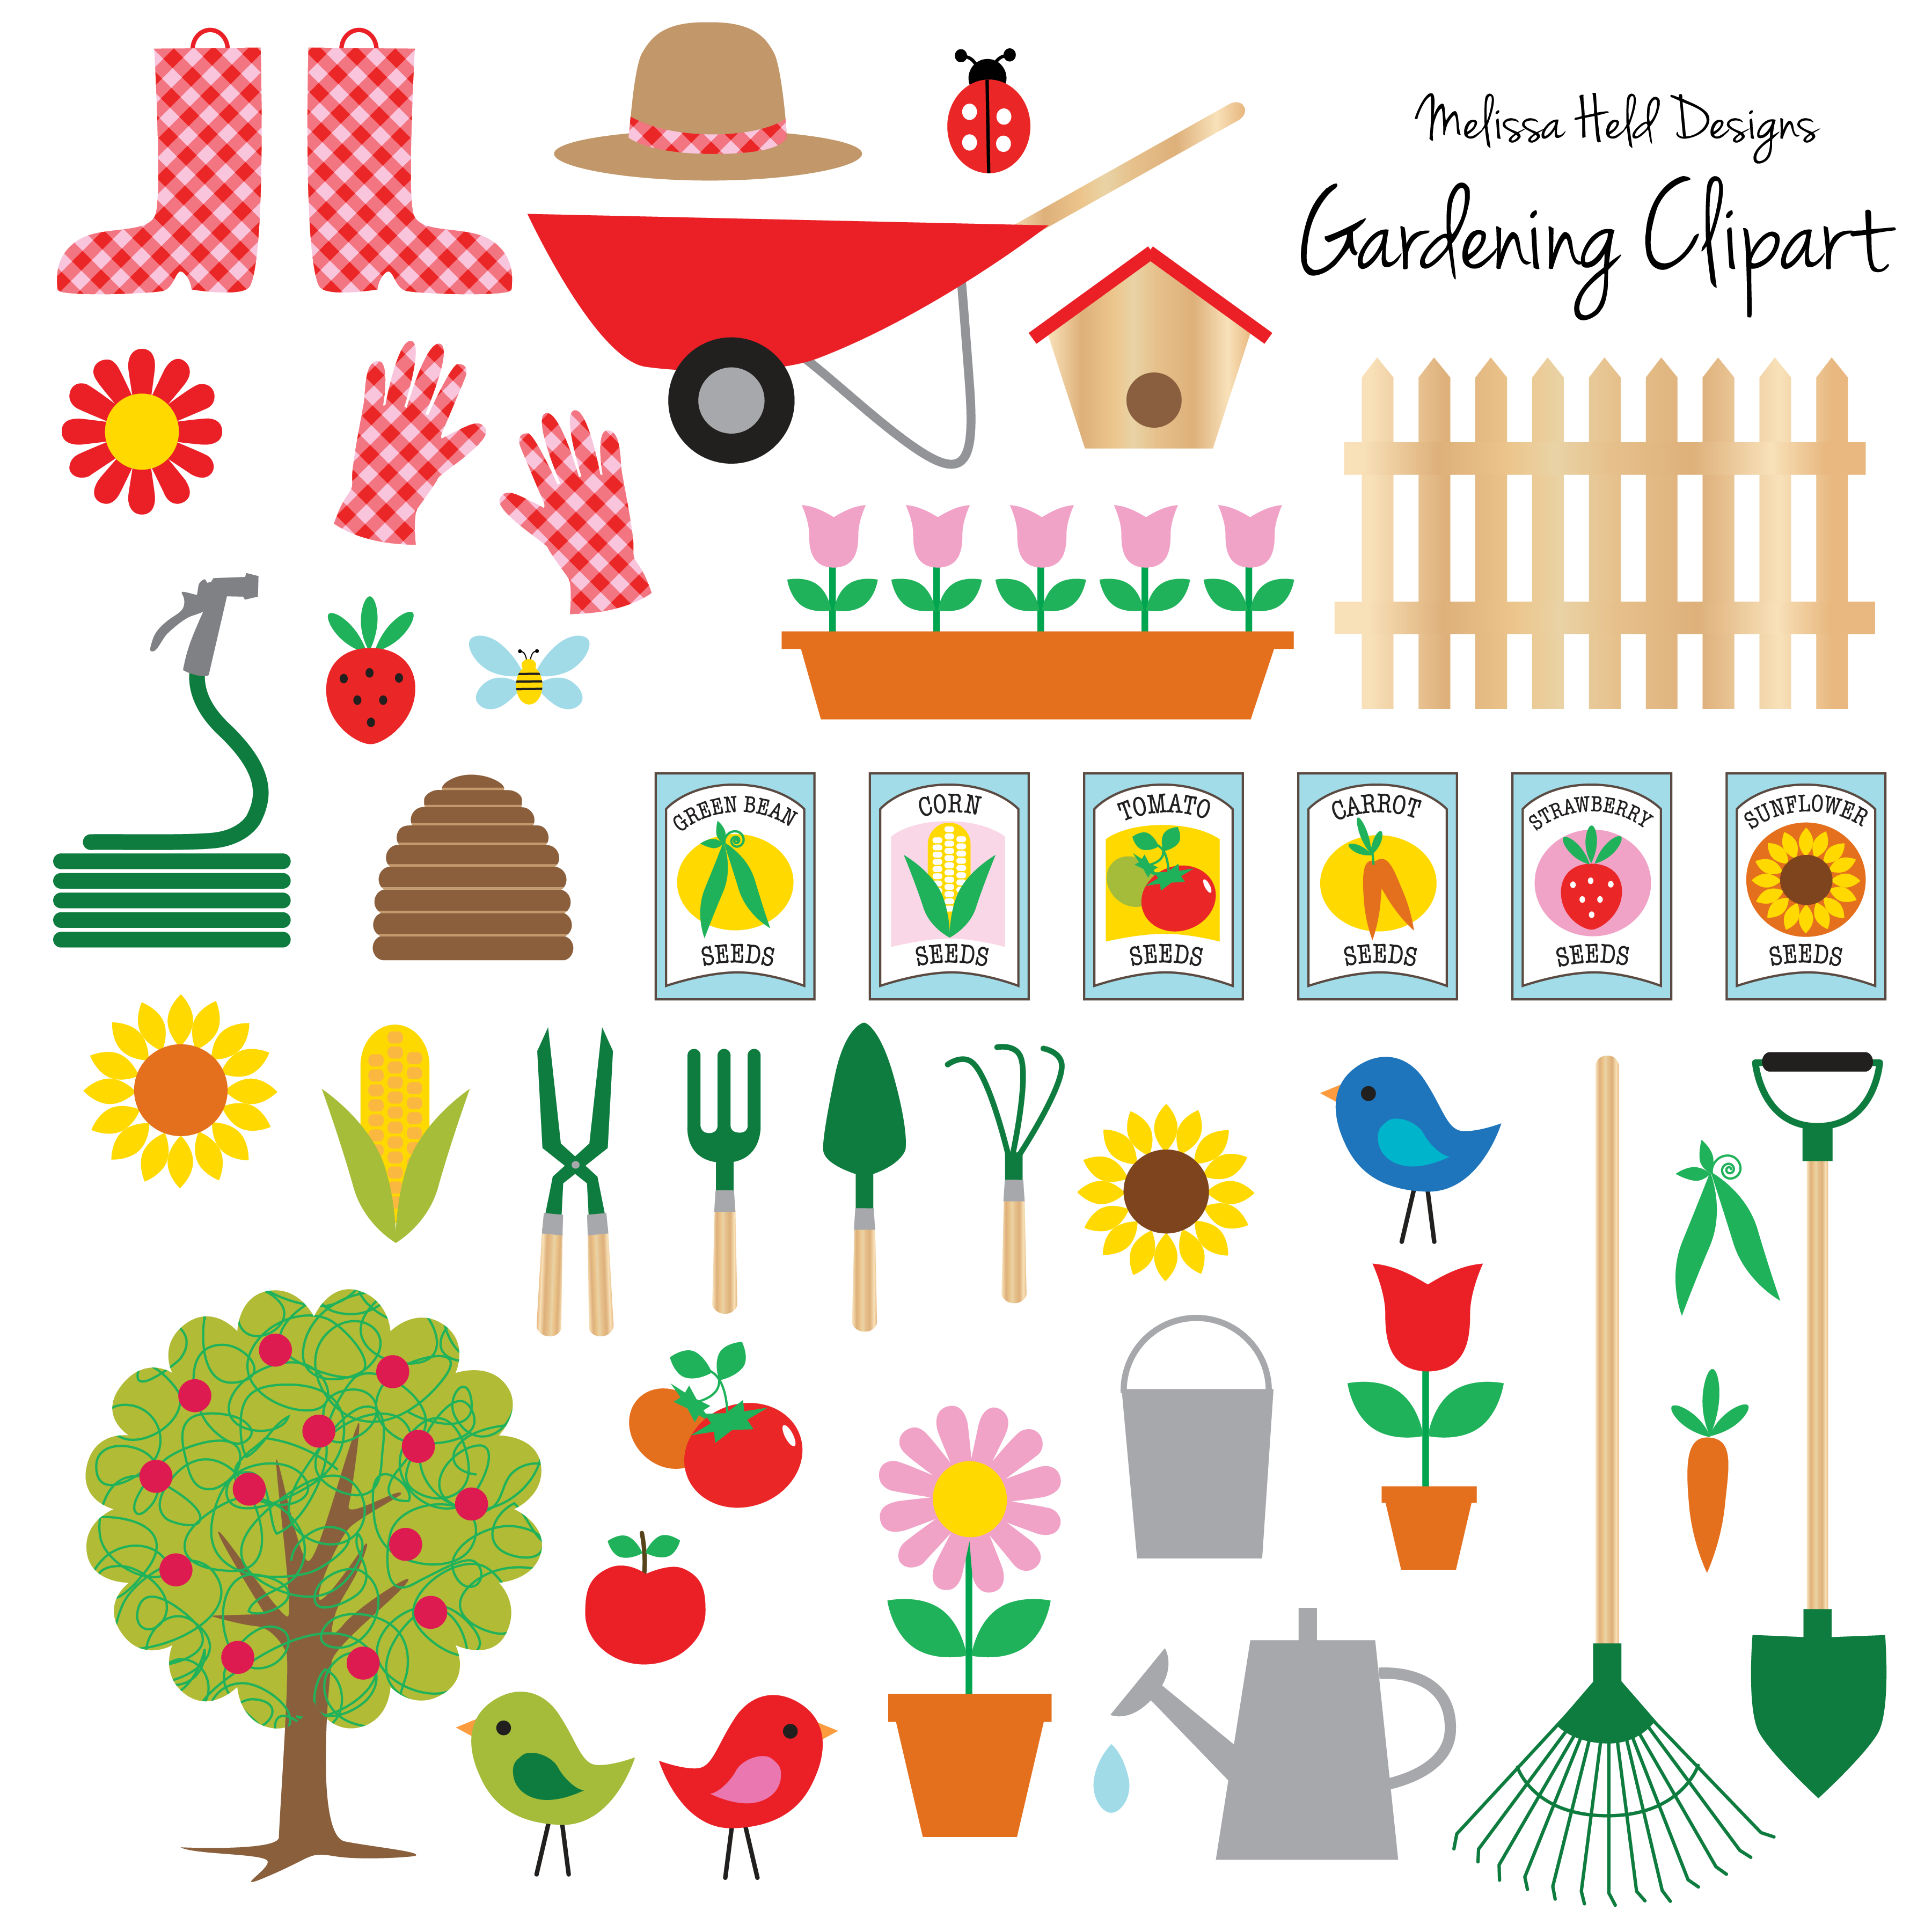 Open seed packets clipart clip art free stock A collection of gardening motifs including tools, seed ... clip art free stock